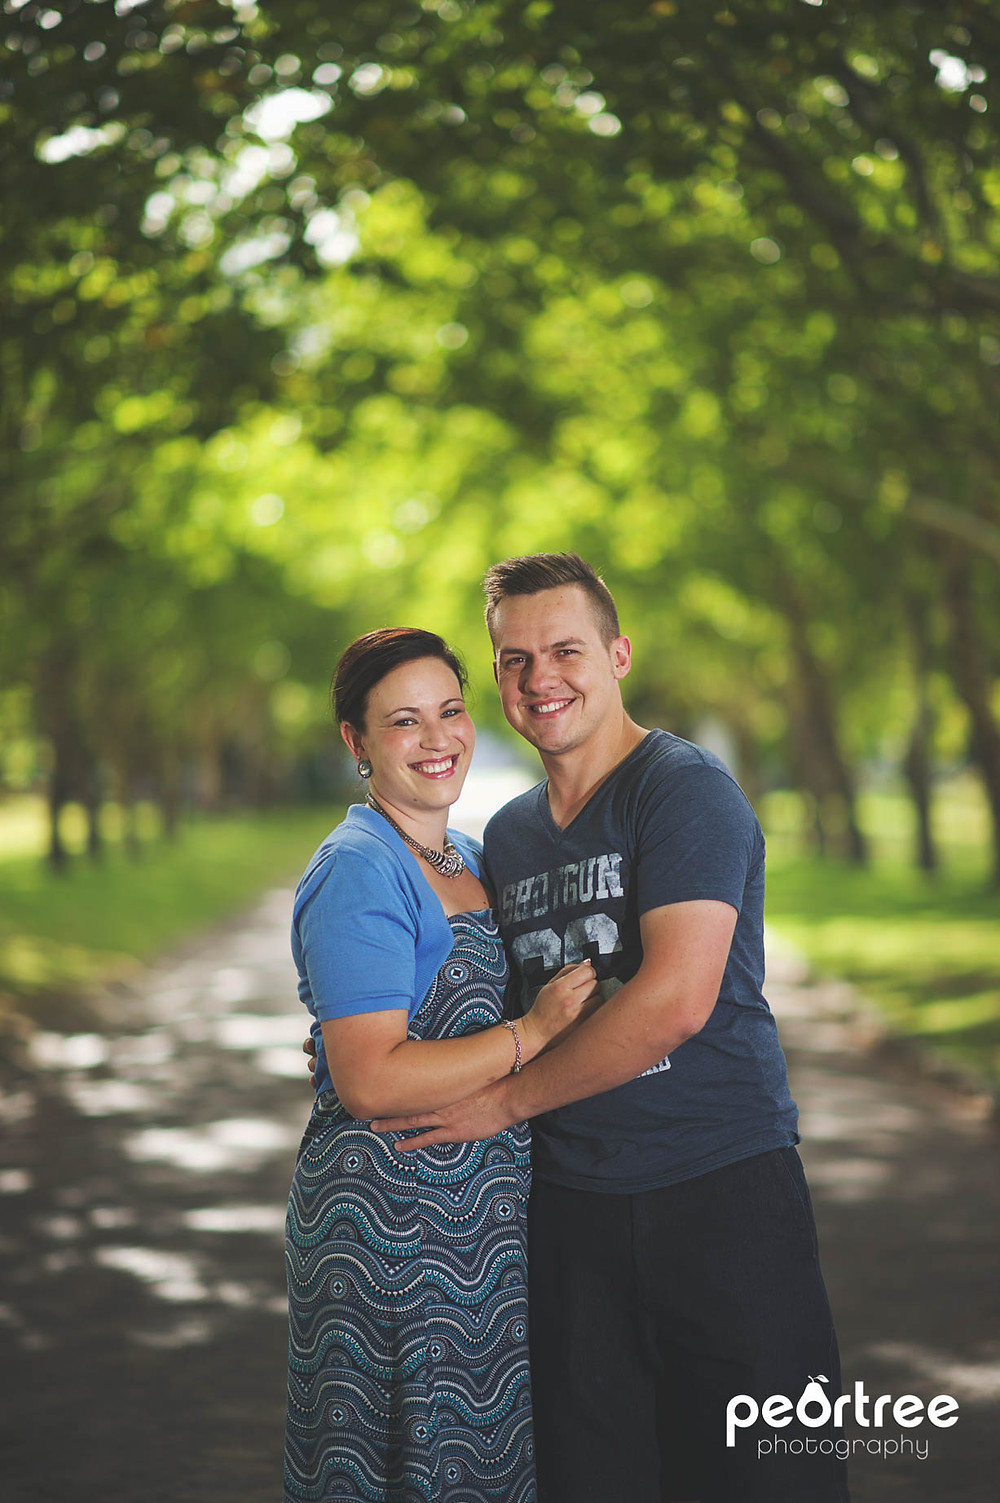 Peartree Photography | 141223 Viviers Fam | http://peartree.co.za/blog/